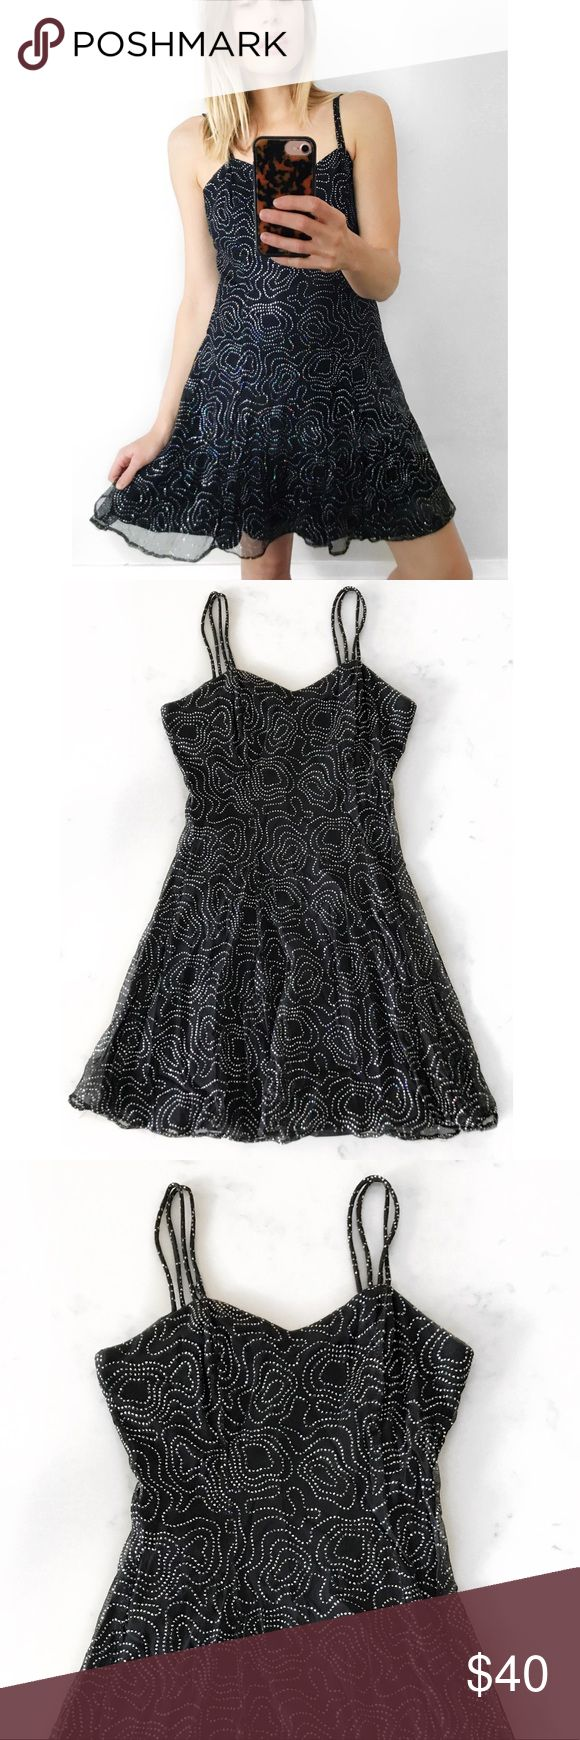 """Vintage Sequin Skater Dress ✨ LBD Dazzling fit and flare """"little black dress"""" from the 80s/90s. Features a sweetheart neckline and zip back closure with a fitted bodice and flared mini skirt and sequins allover. Perfect for cocktails or that final song on the dance floor. US size M - fits like a US size 4-6. In excellent pre-owned, vintage condition  #black #cocktail #party #sexy #sequin #dresses #skirts #& Vintage Dresses"""